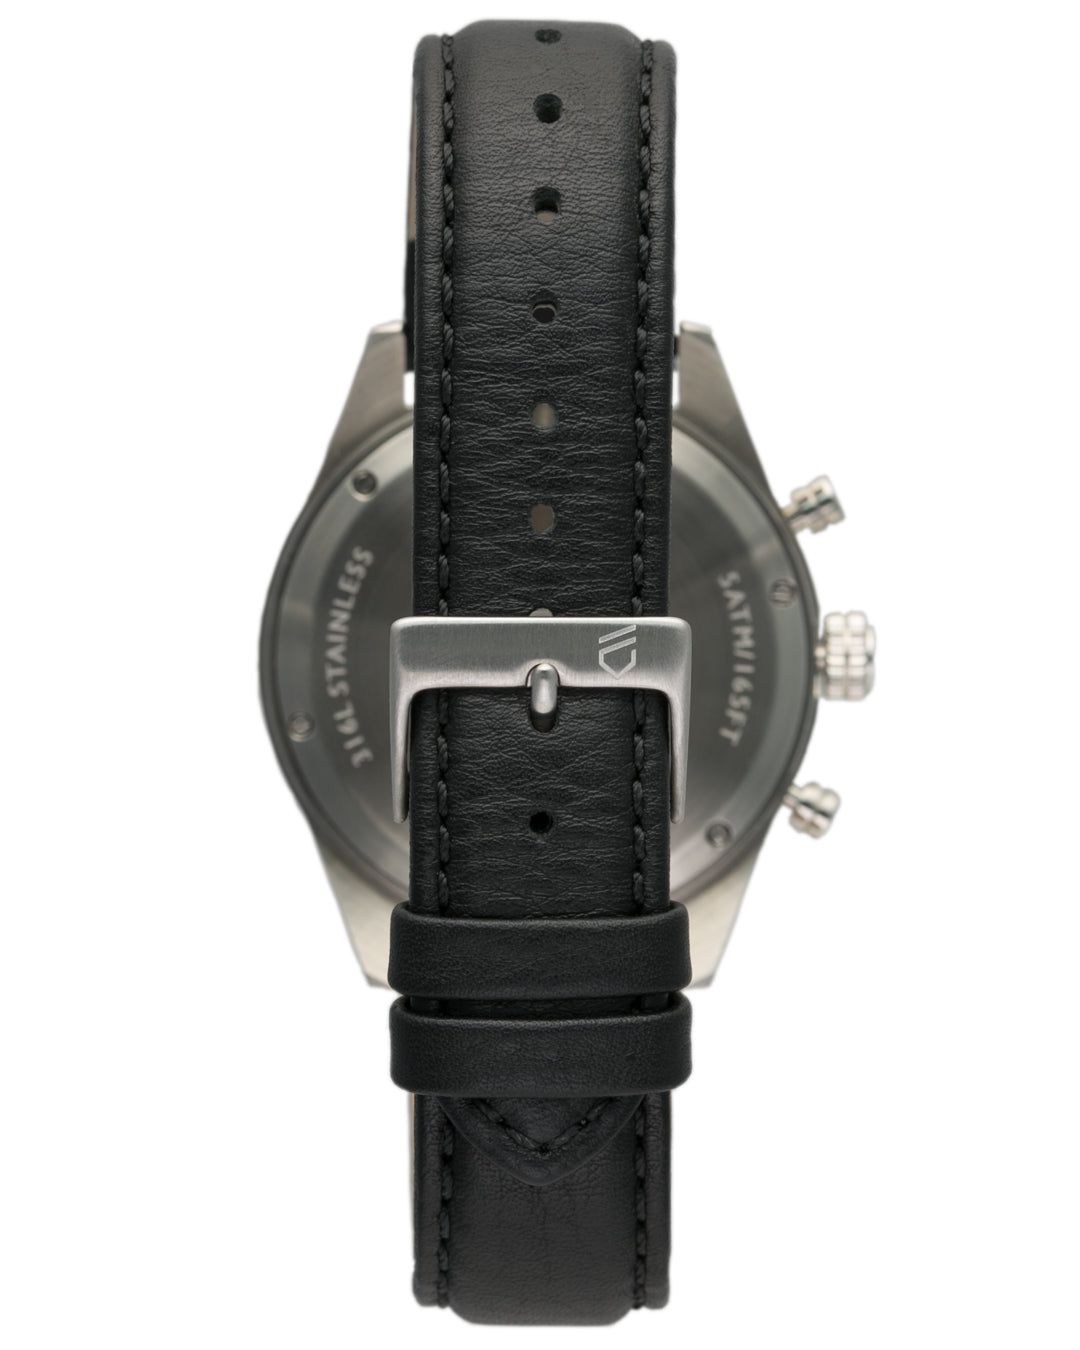 Italian leather watch strap with silver engraved buckle